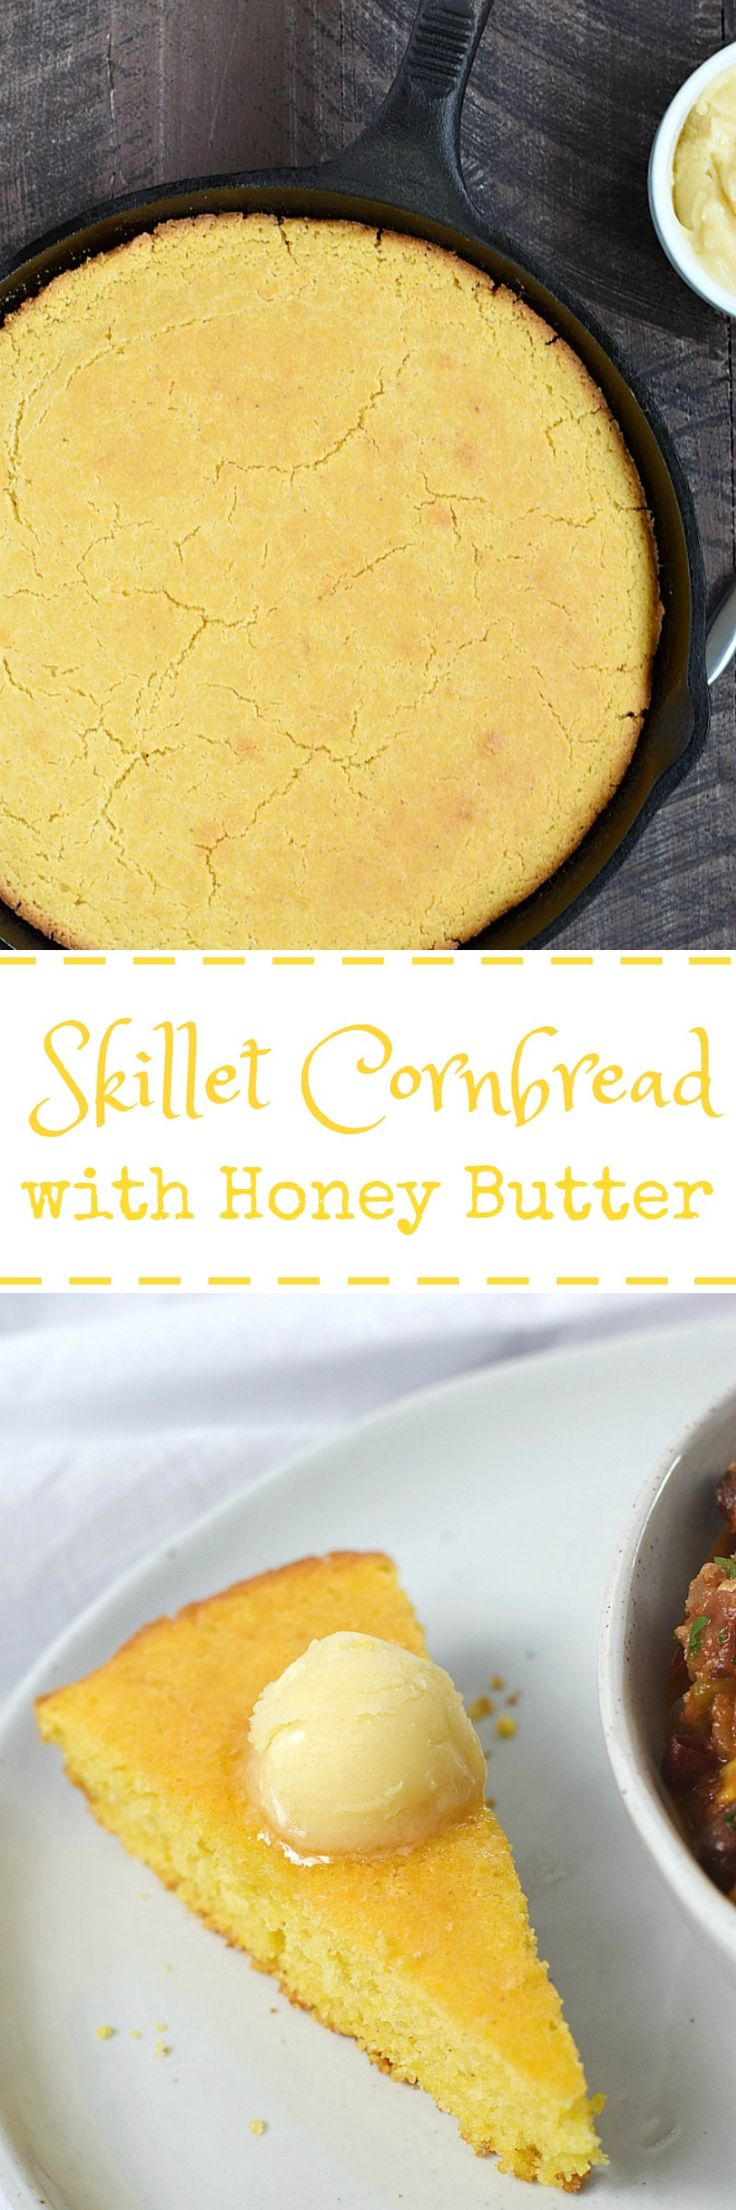 Hot and delicious Skillet Cornbread served with creamy, whipped Honey Butter is perfect along side a bowl of soup or chili | cookingwithcurls.com